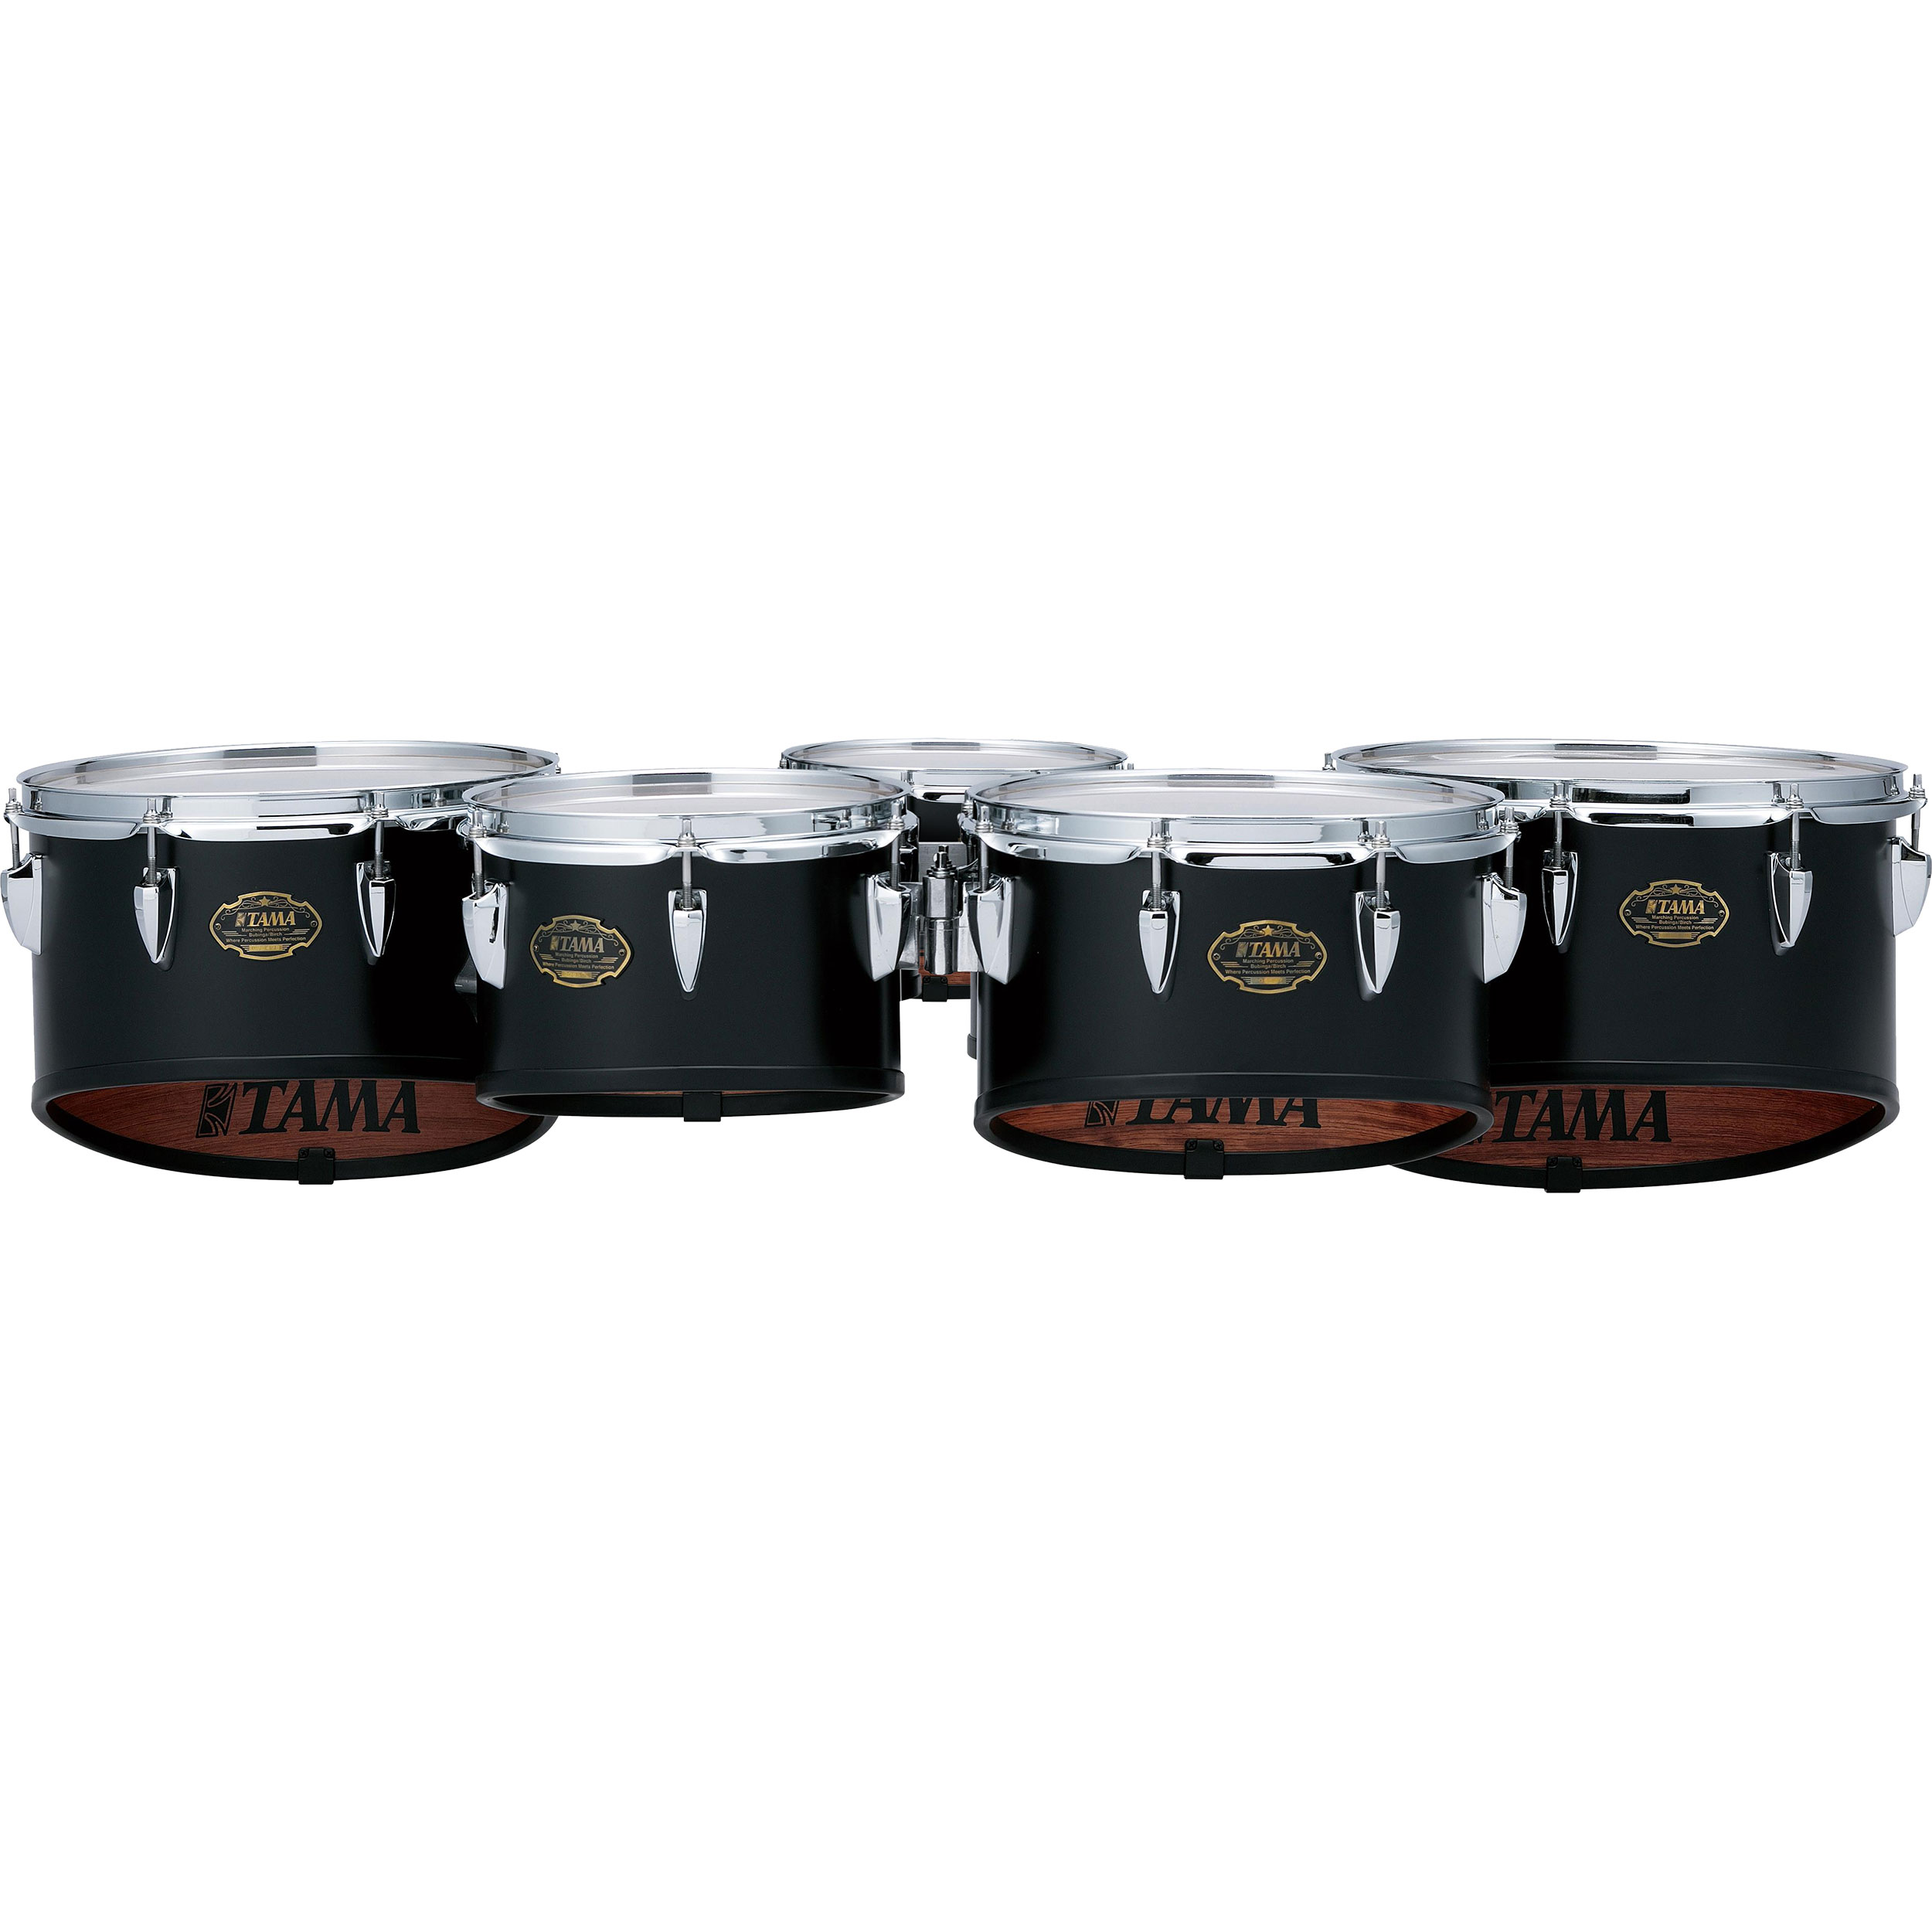 "Tama 6-10-12-13-14"" Maple Marching Tenors in Satin Black"